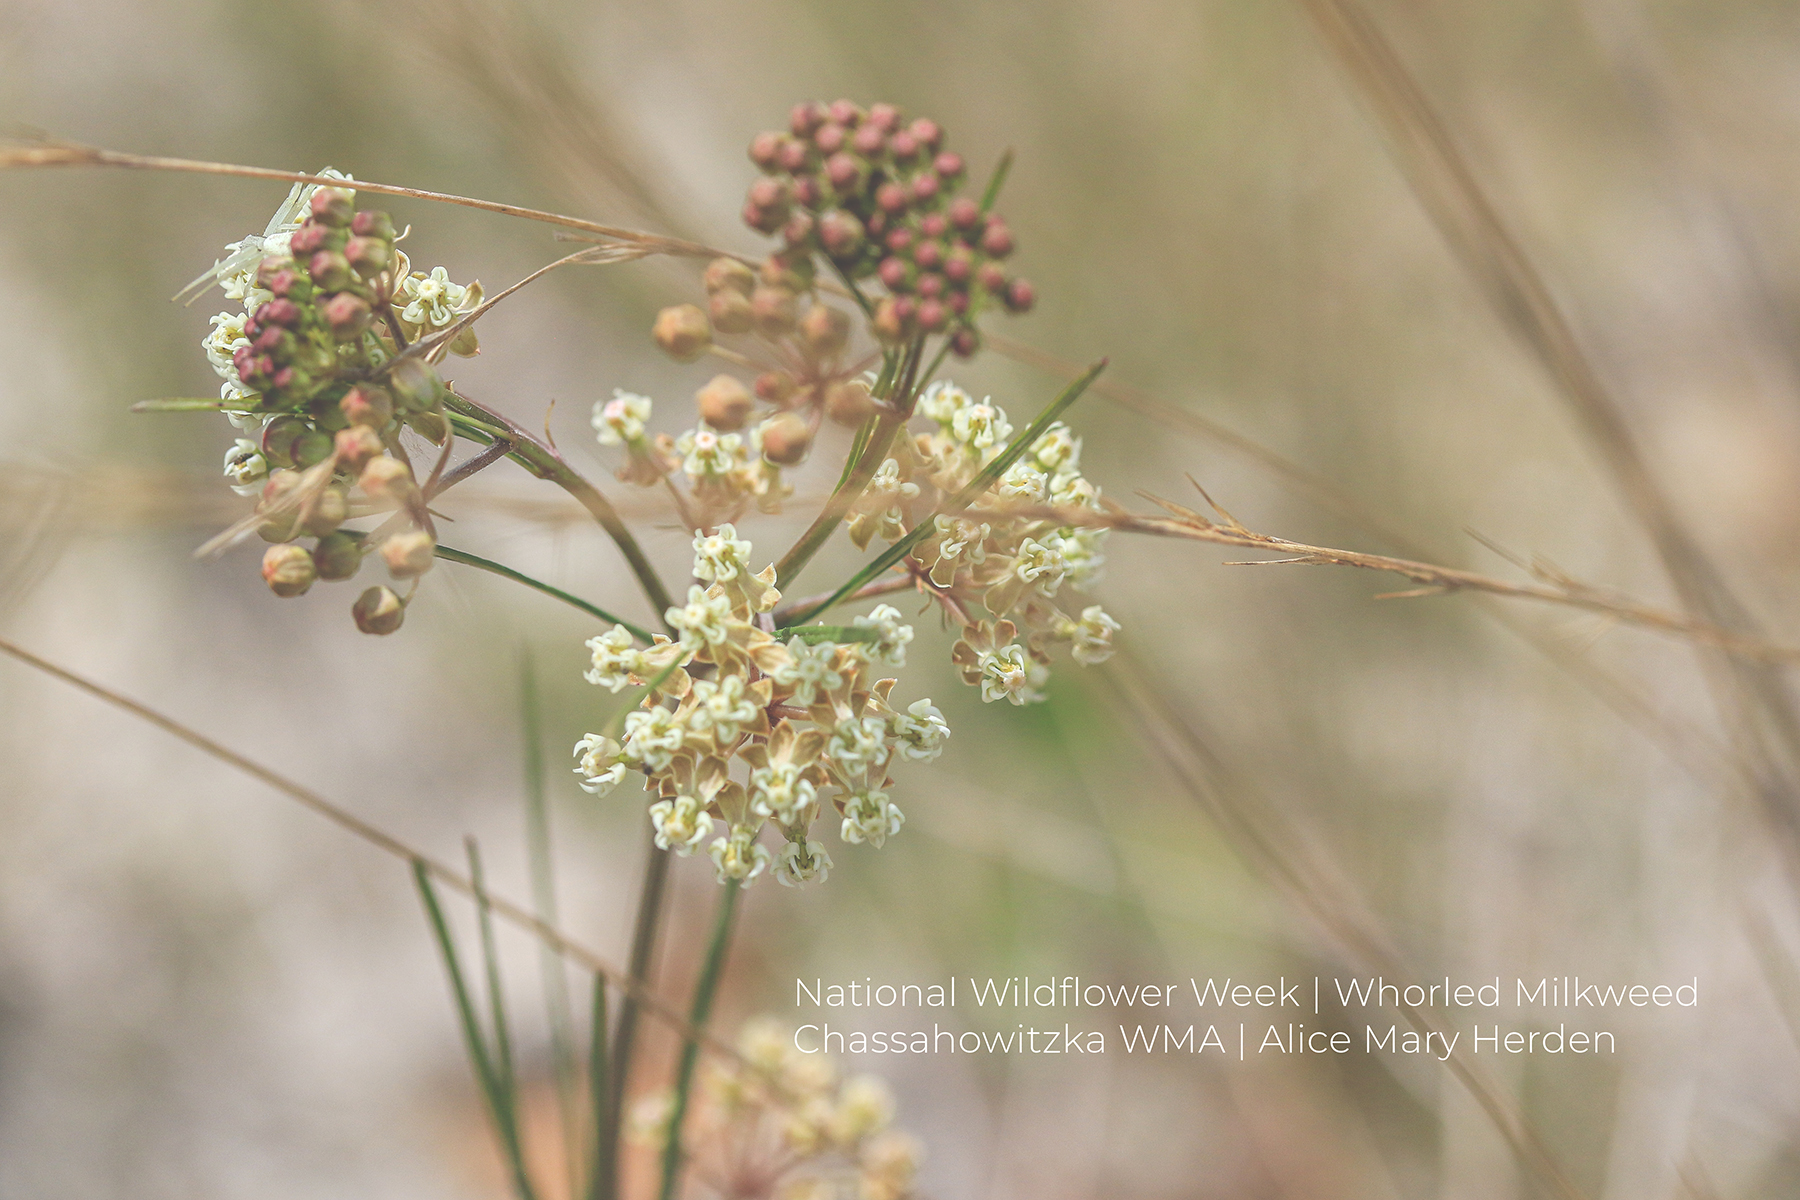 National Wildflower Week – Day Three and Four